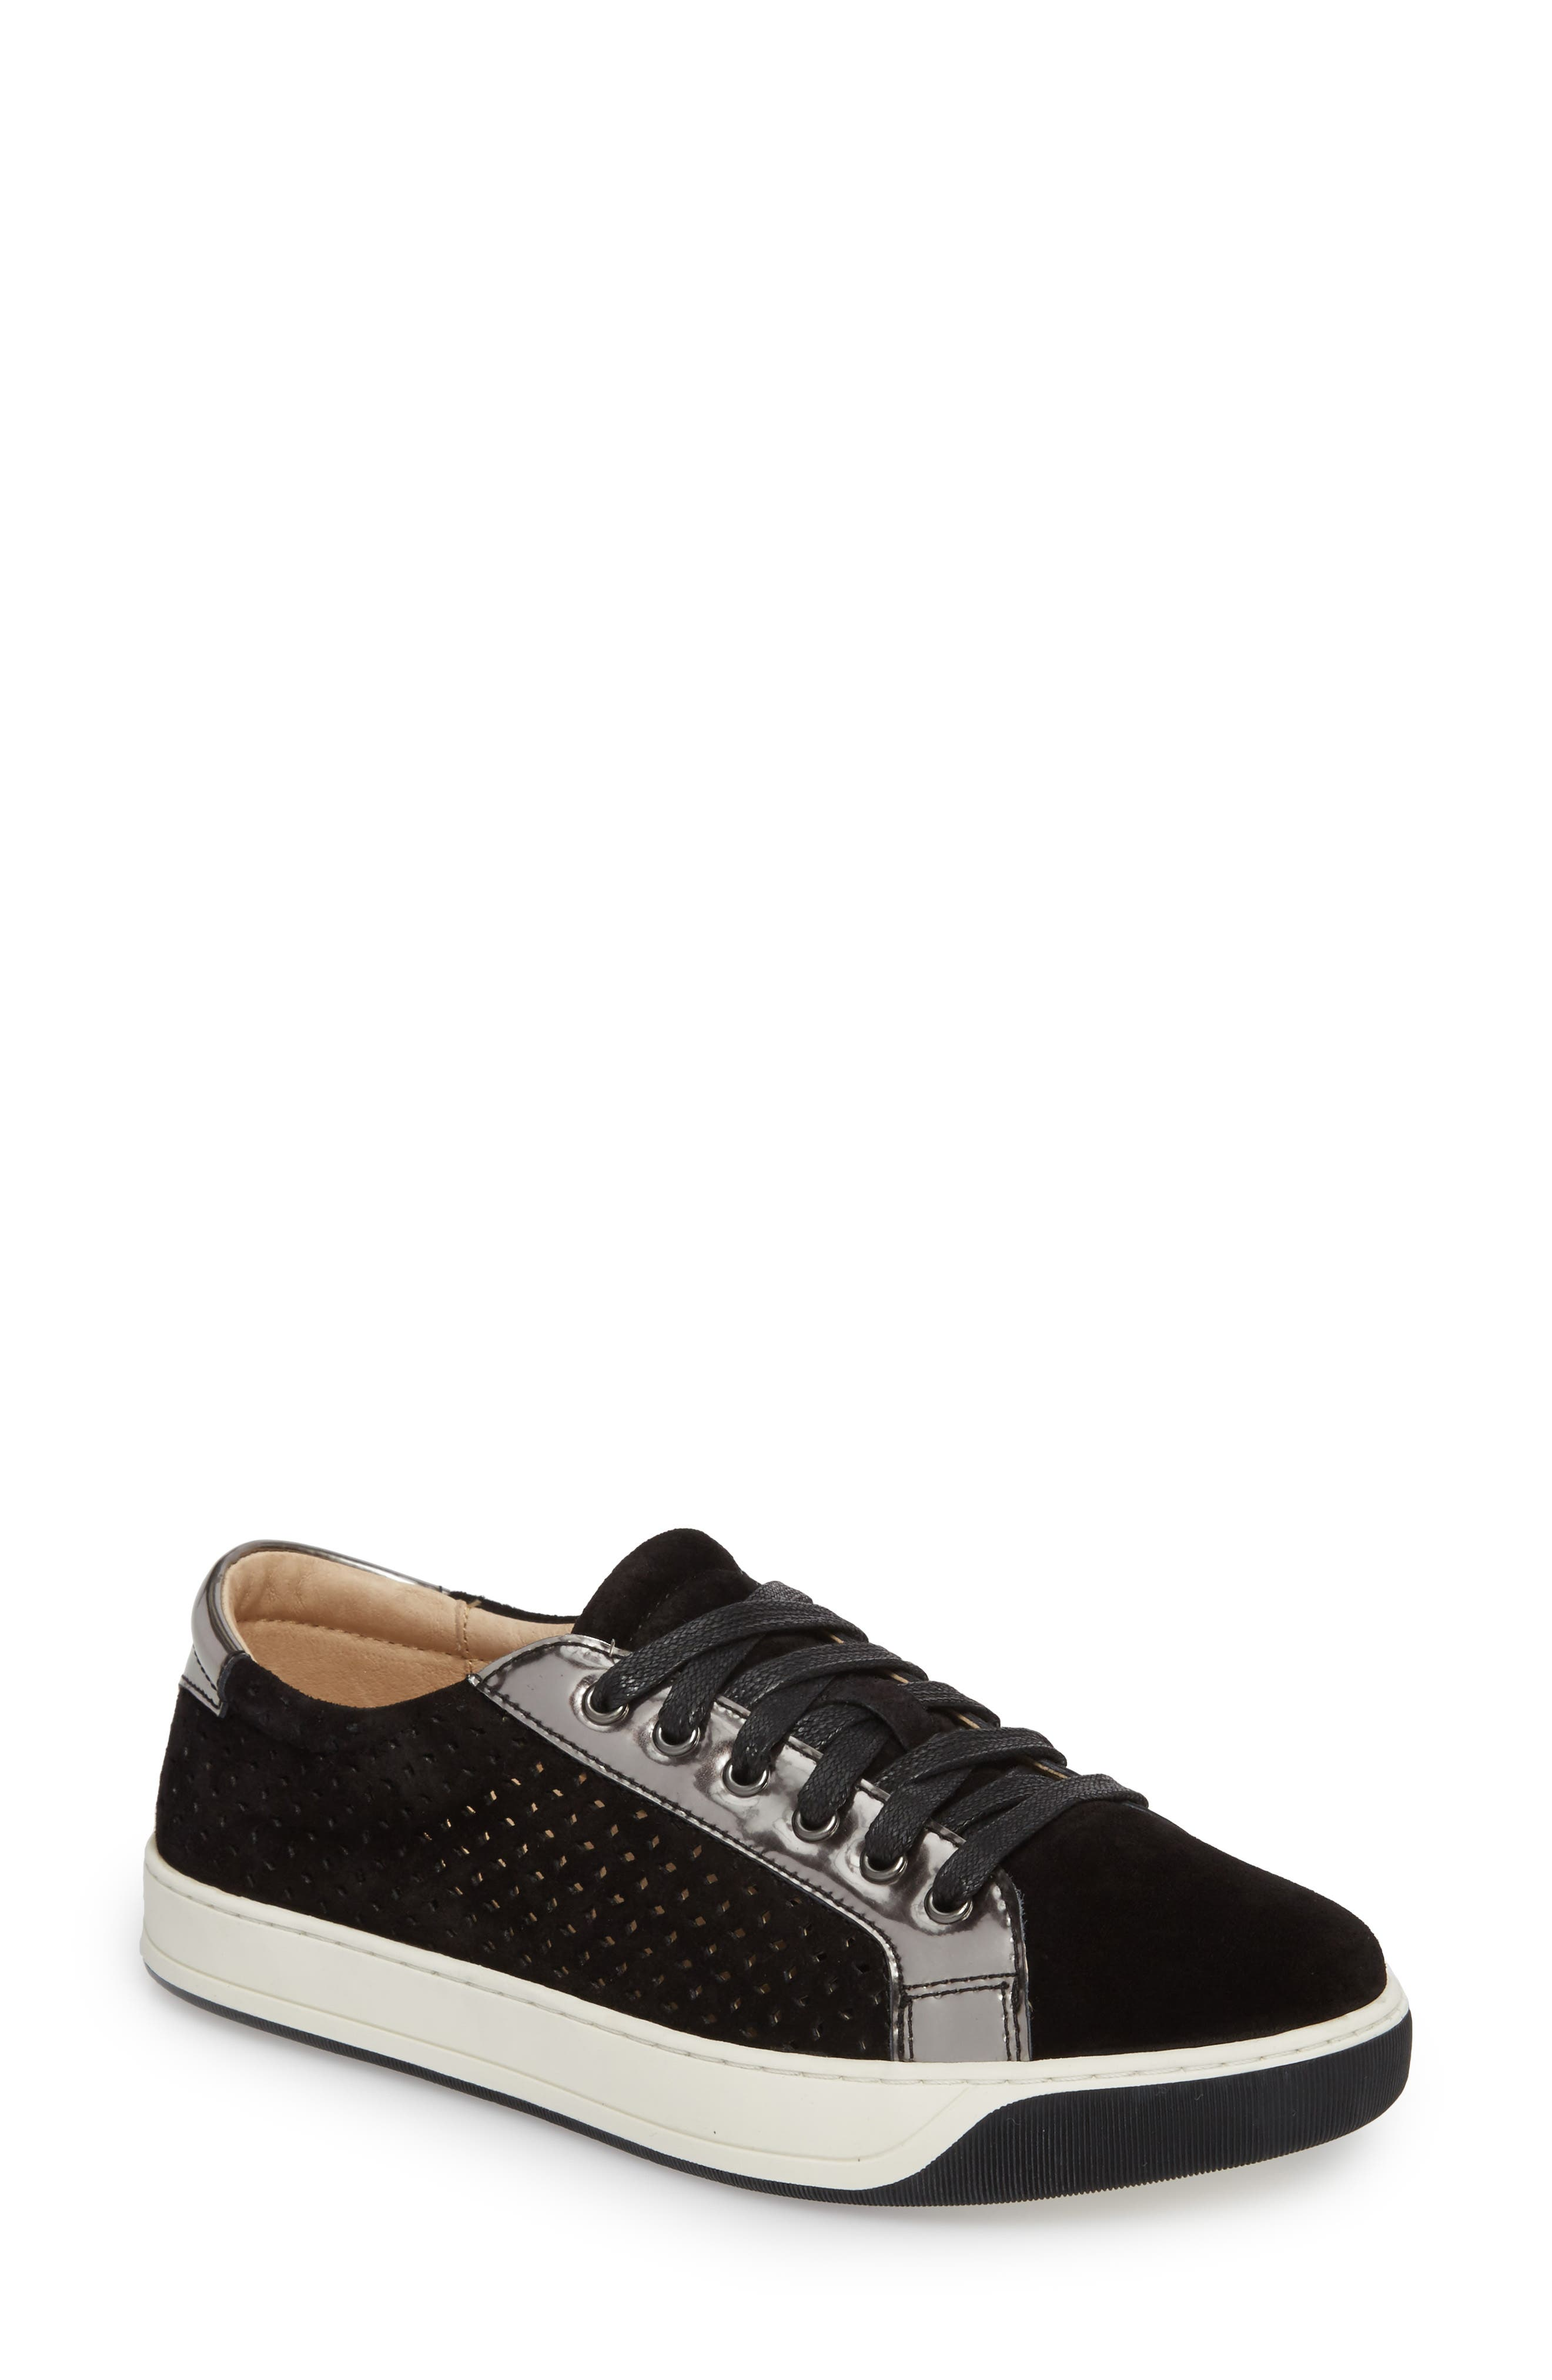 Emerson Perforated Sneaker,                             Main thumbnail 1, color,                             001